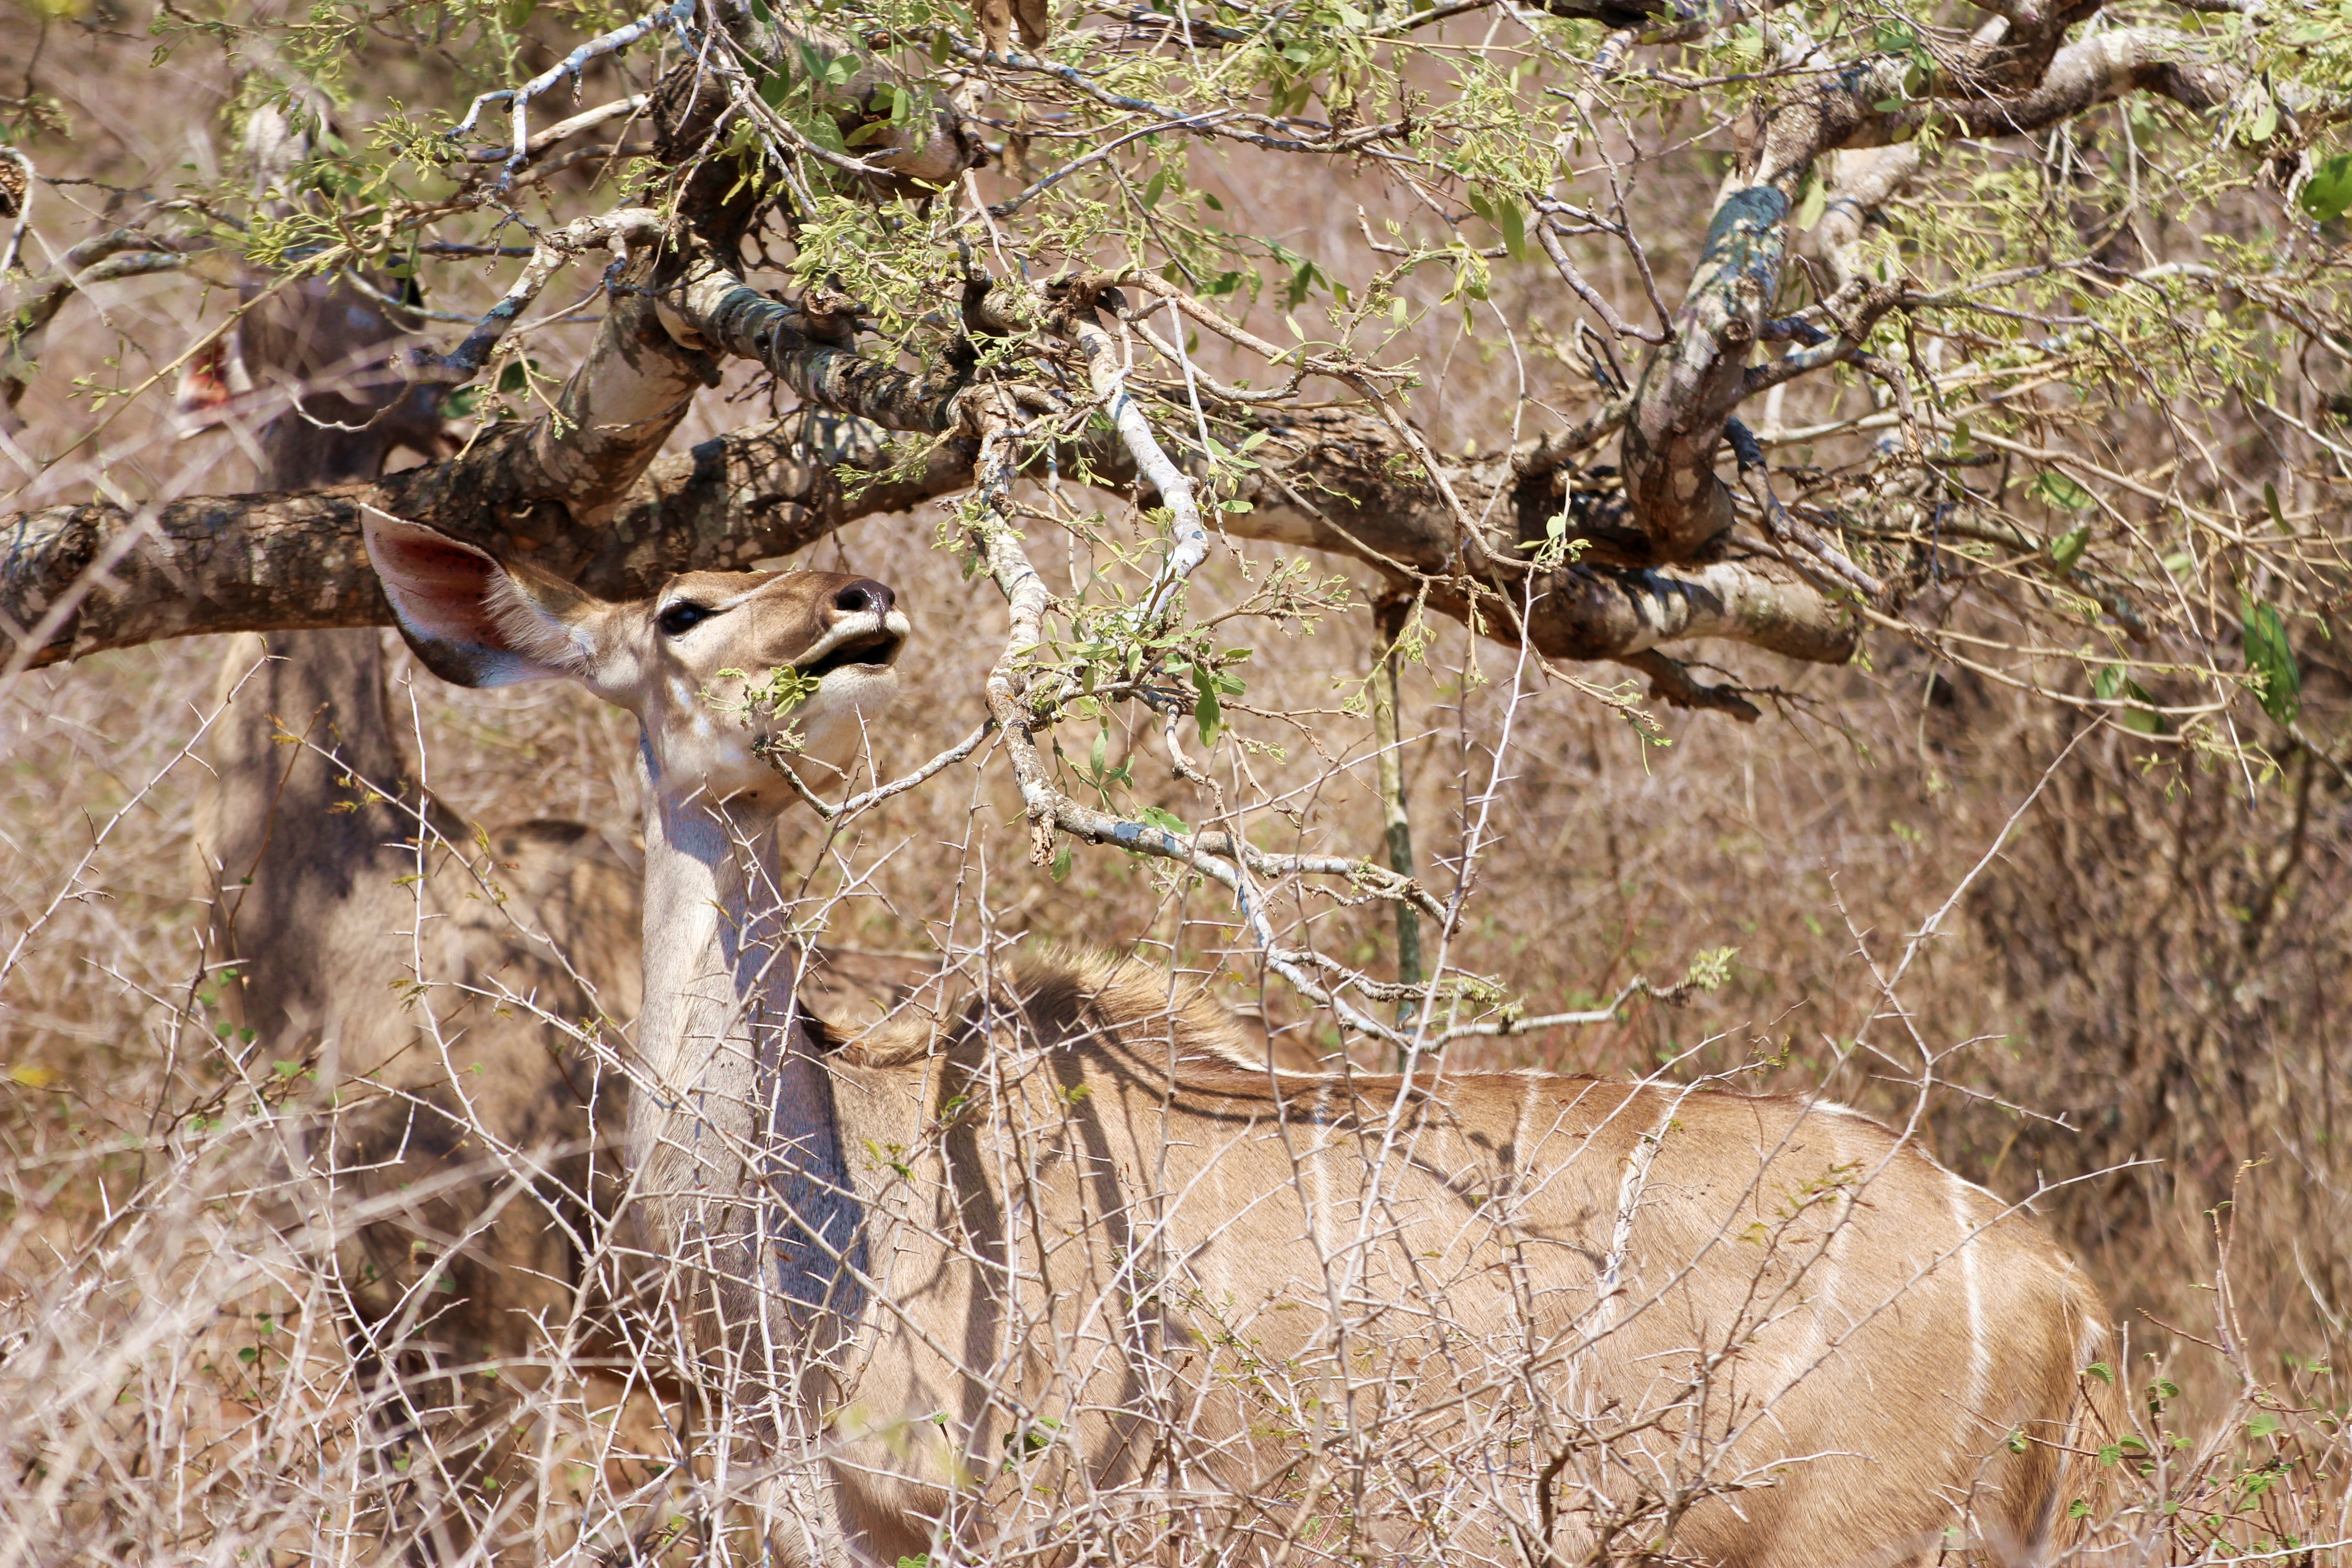 Kruger antelope eating from tree